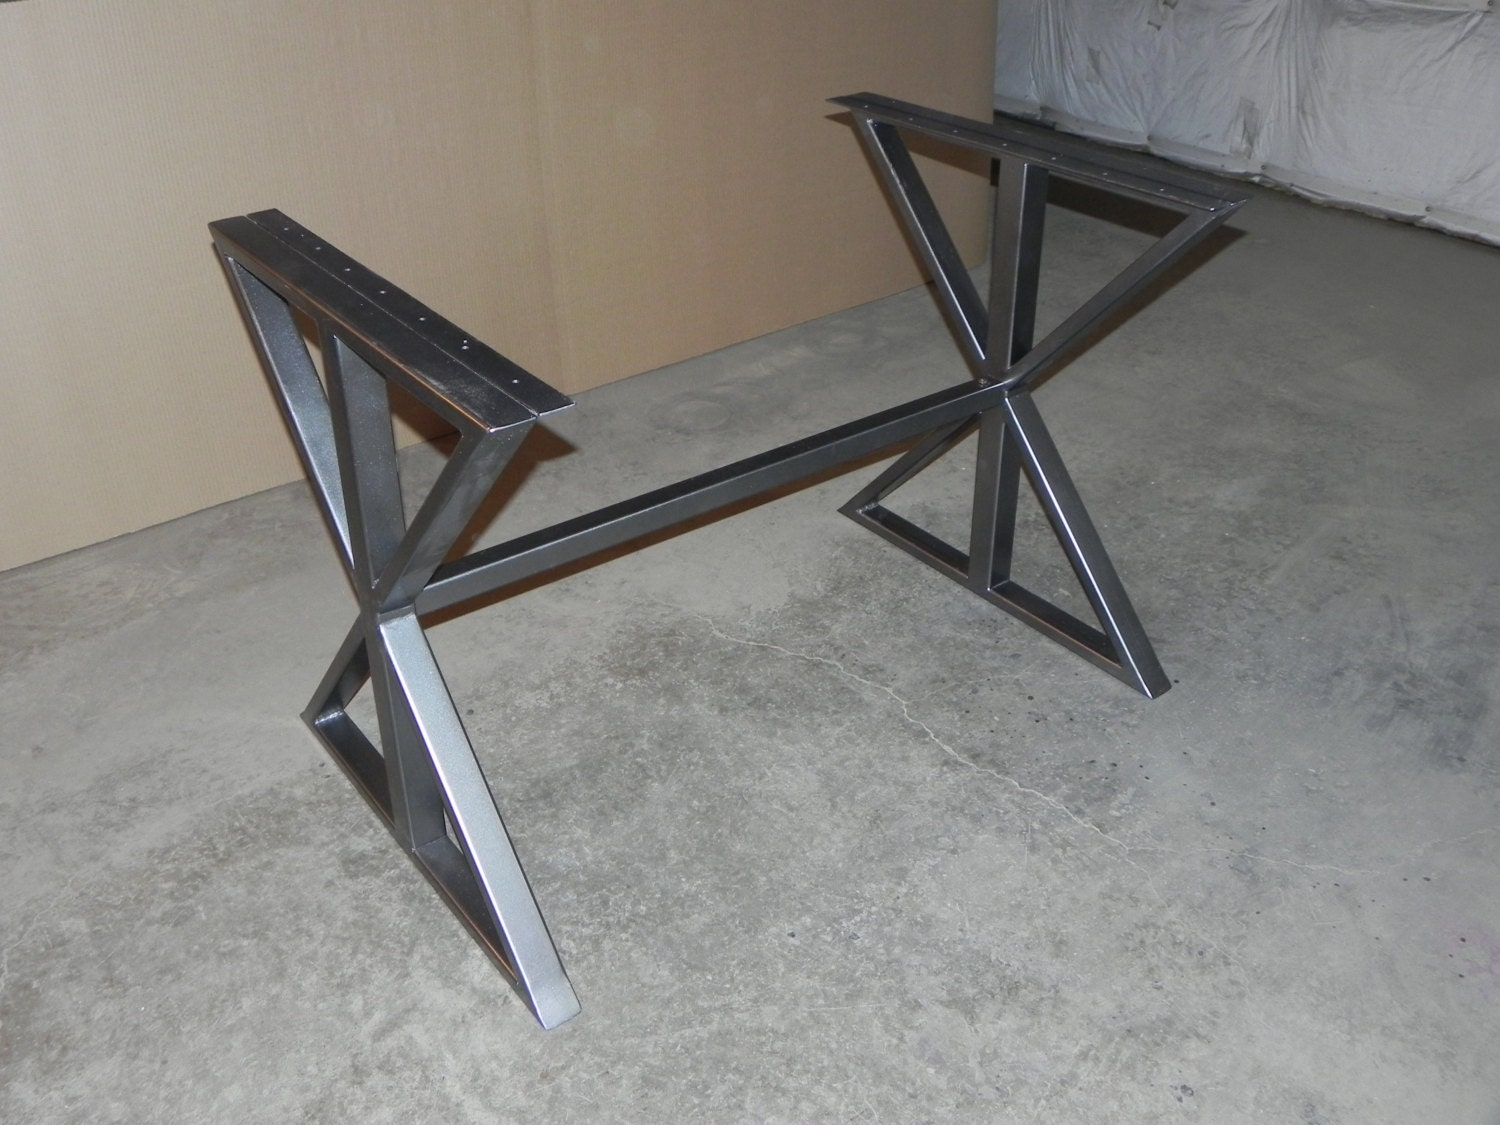 Modern steel farmhouse diy table base by funkylivingca on etsy Metal table base